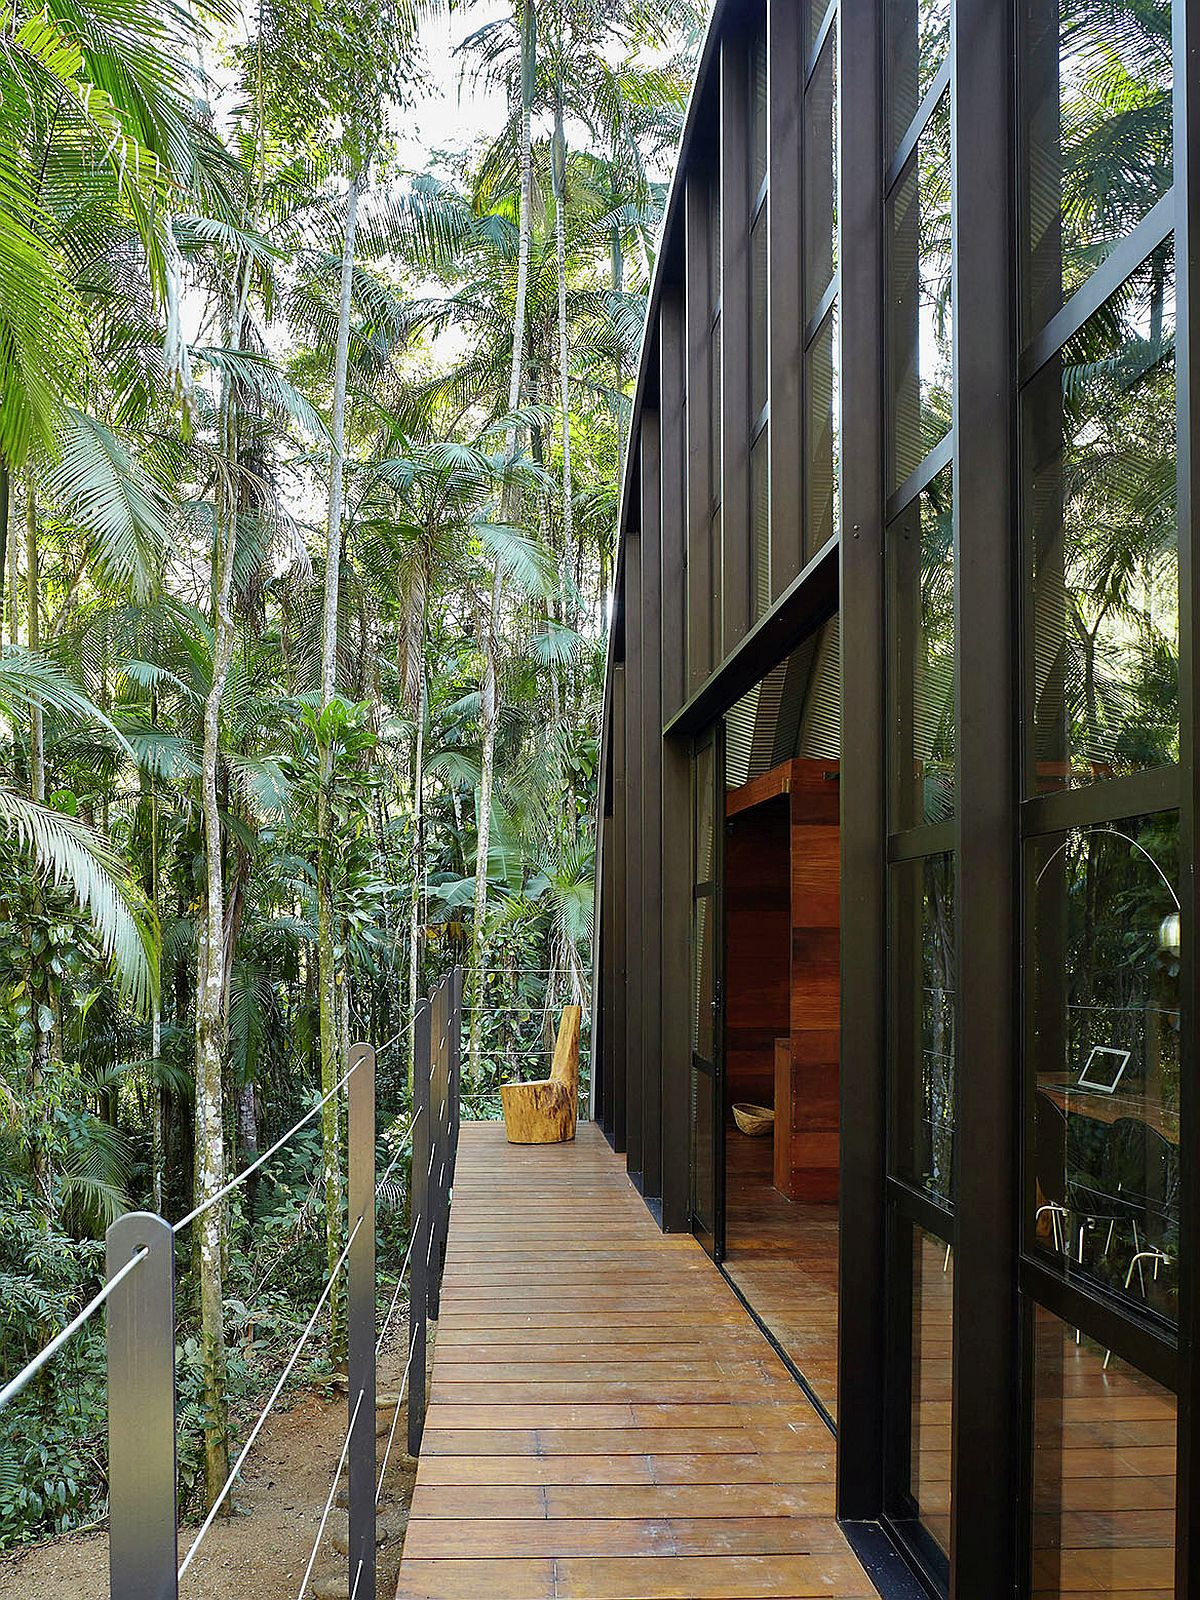 Long balcony of the house offers delightful views of the rainforest around the house